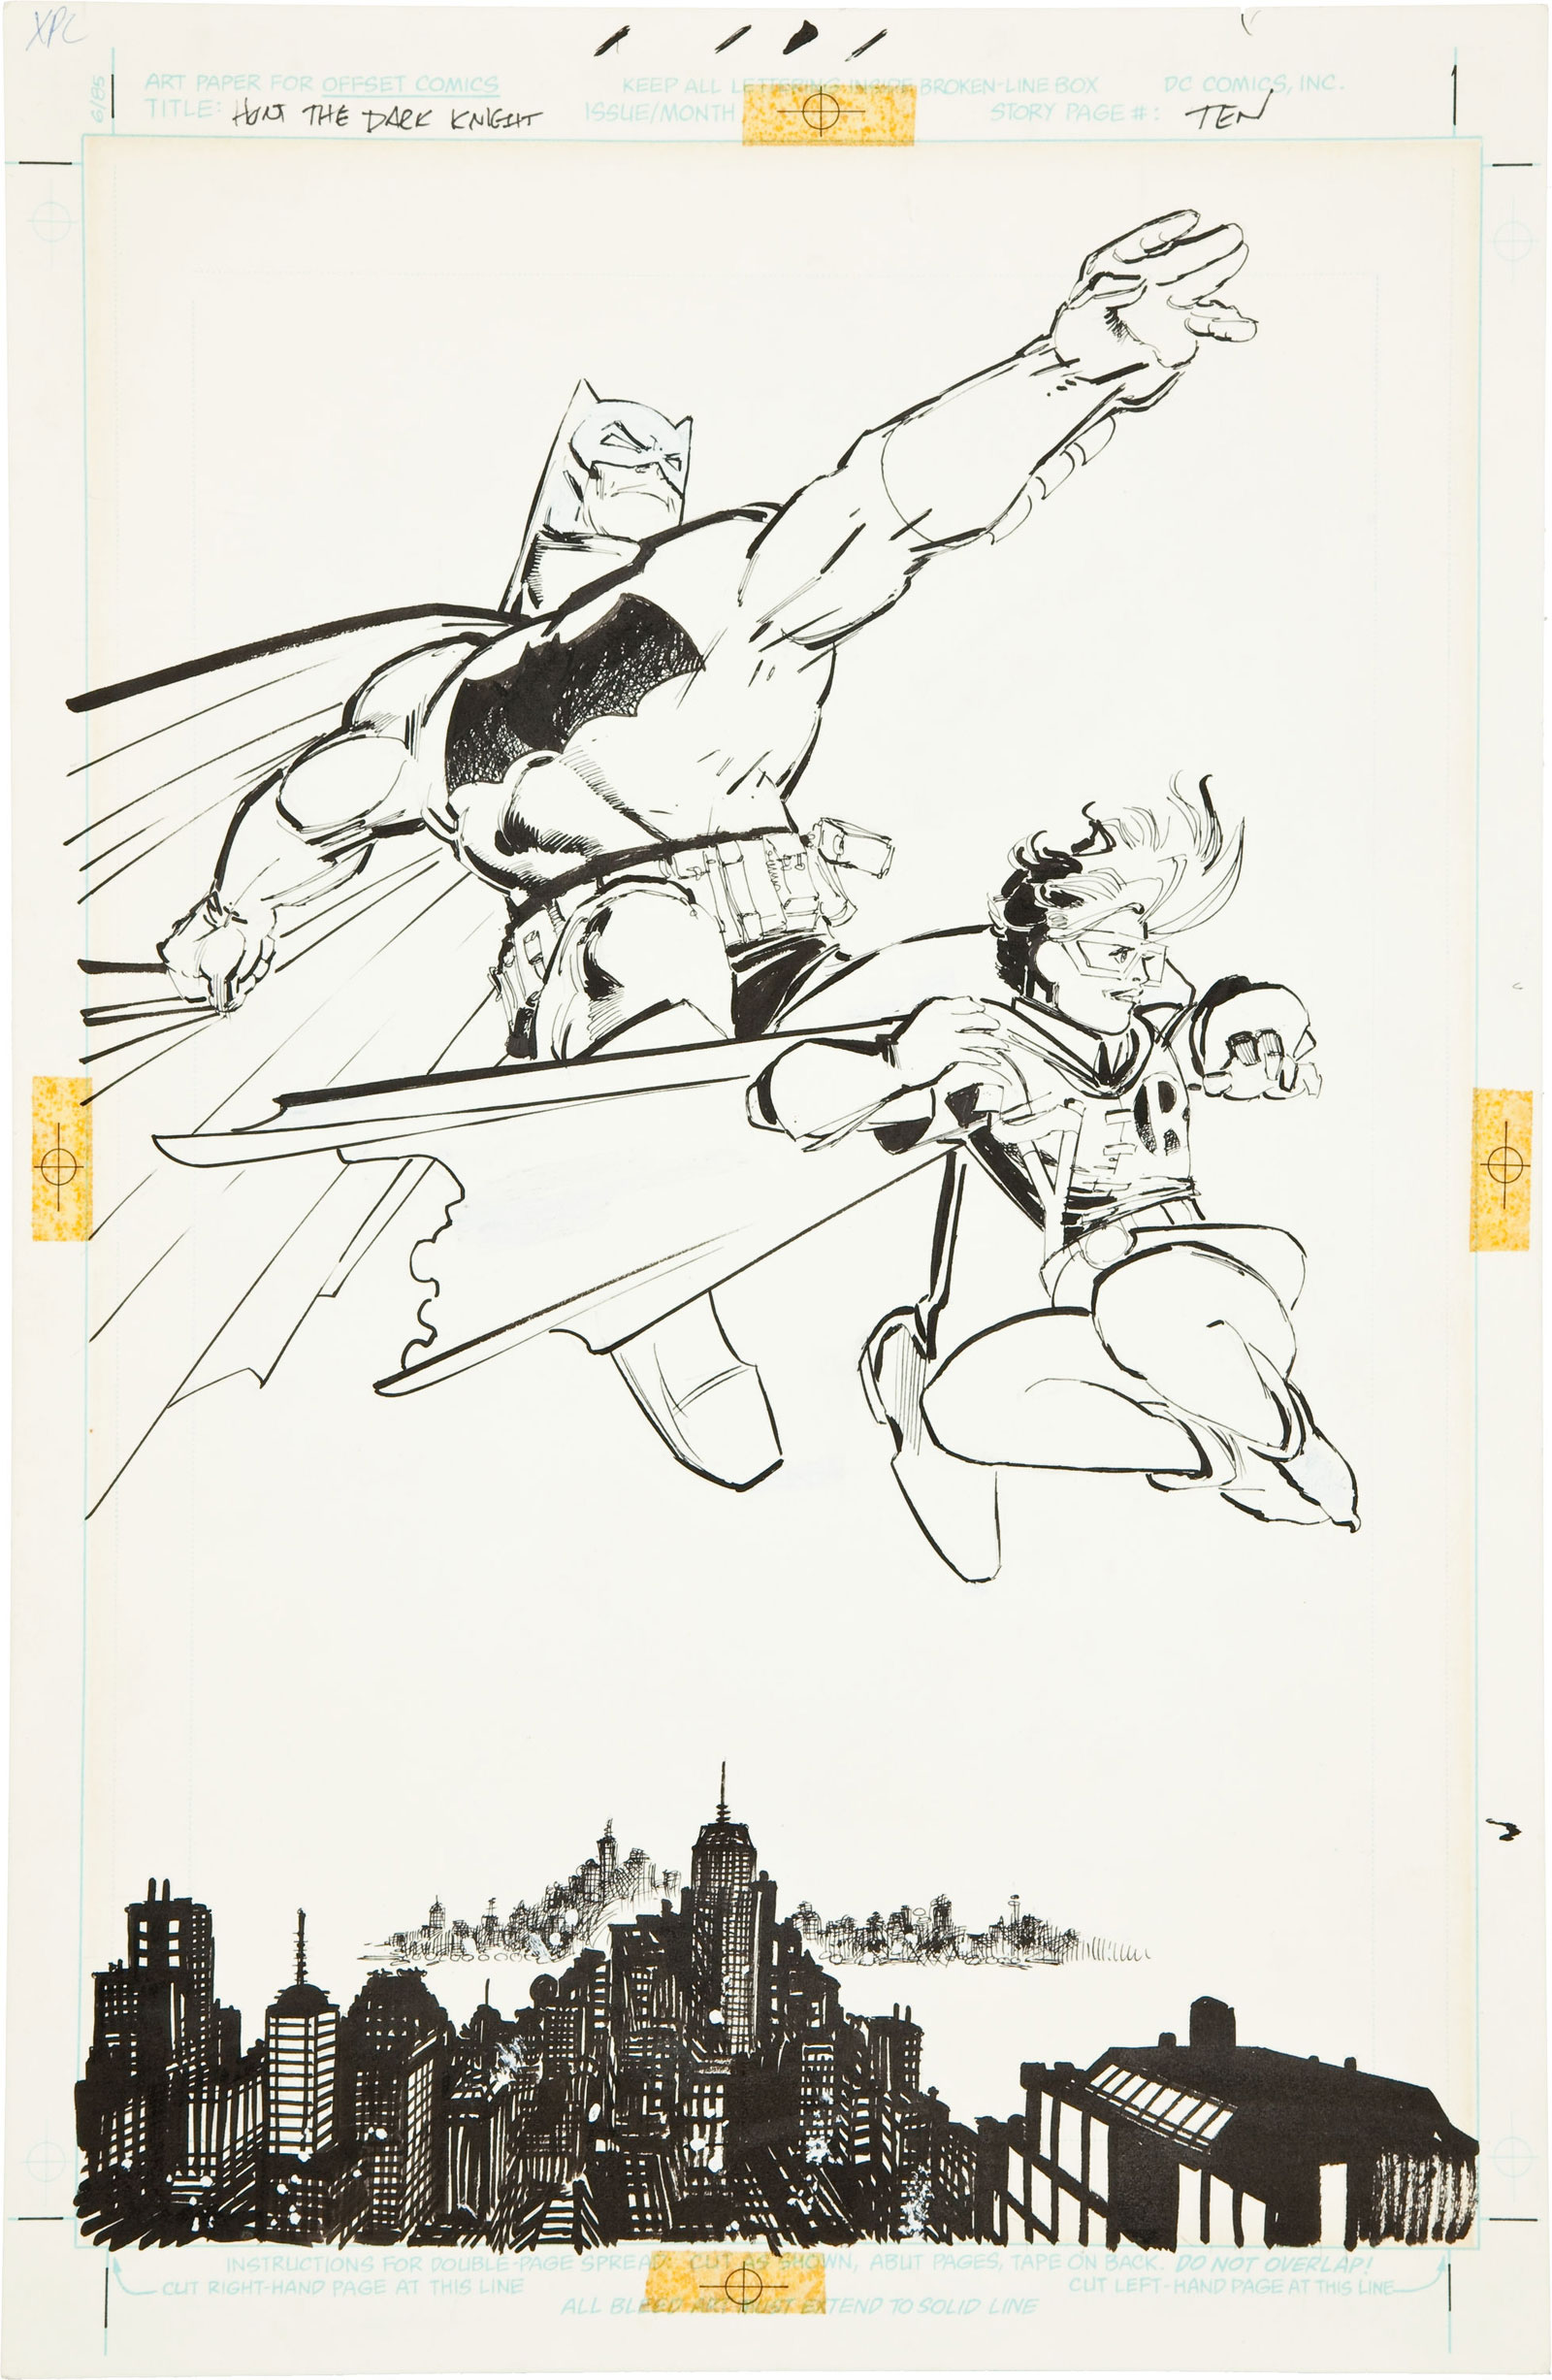 Frank Miller and Klaus Janson Batman: The Dark Knight #3 Batman and Robin Iconic Splash Page 10 Original Art